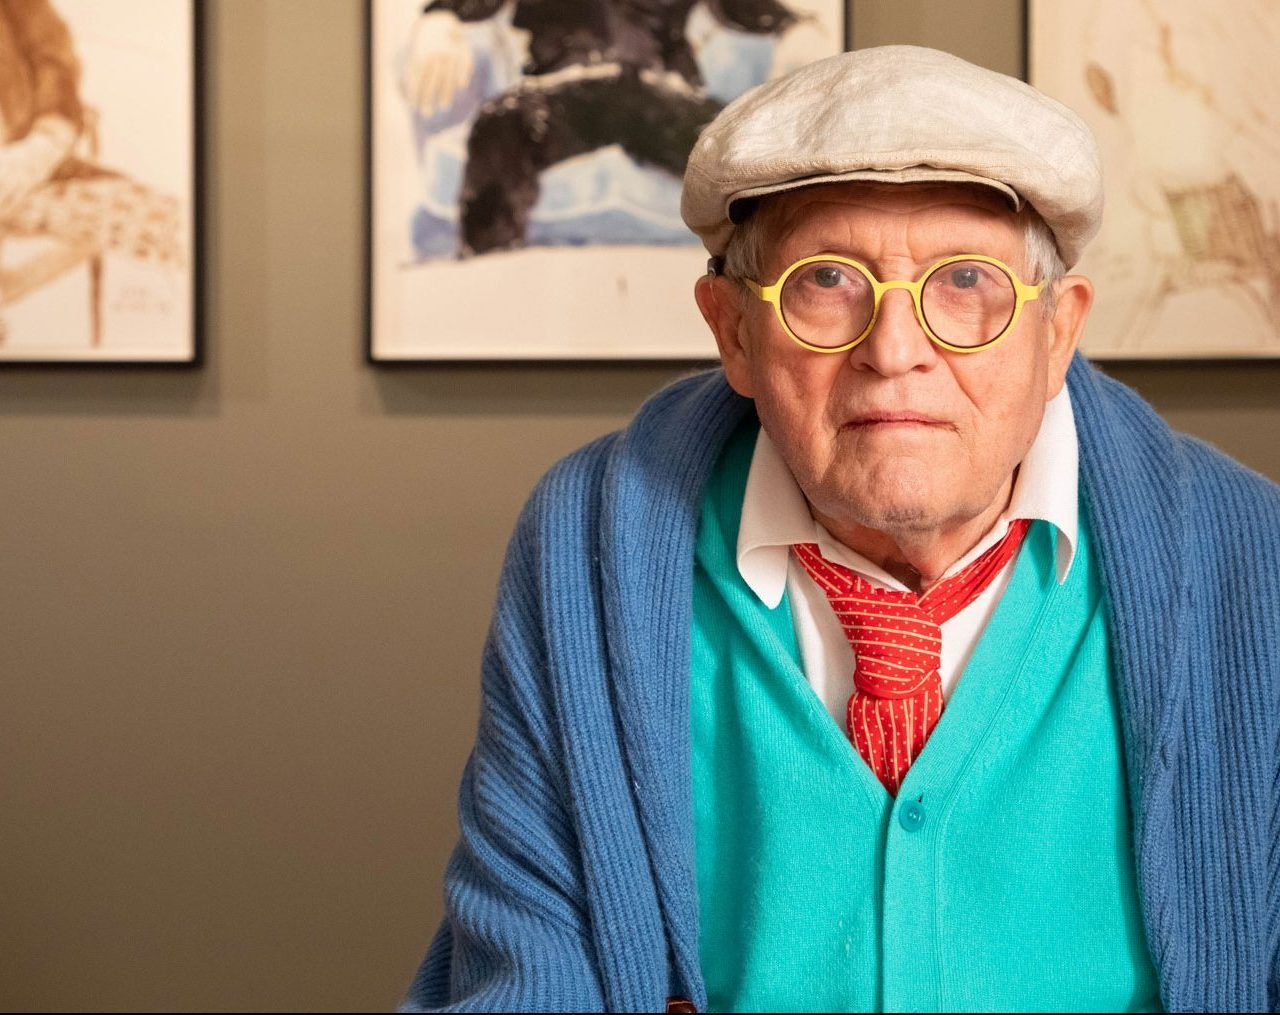 David Hockney Exhibition at the National Portrait Gallery Shines Light on an Artist's Life